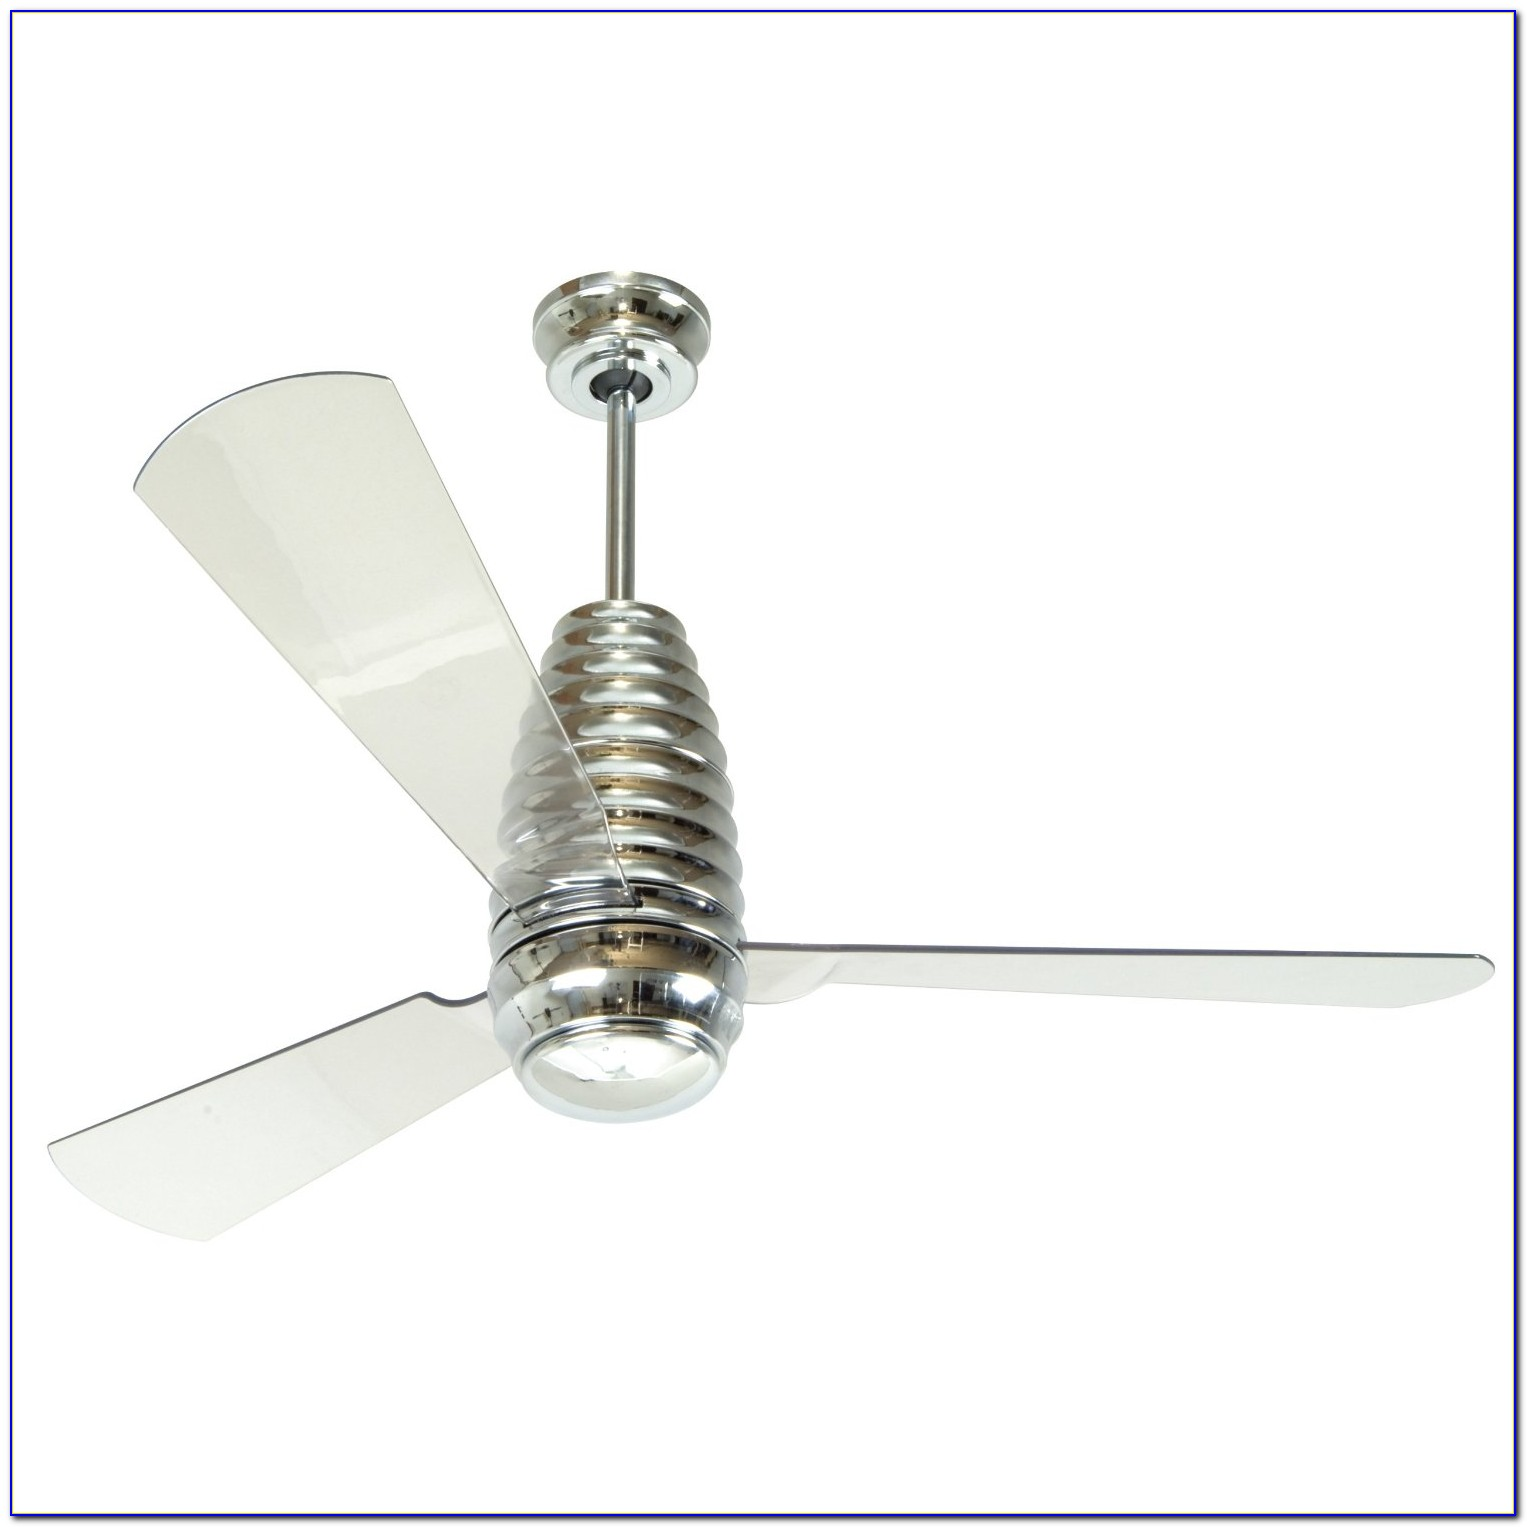 Clear Plastic Ceiling Fan Blades